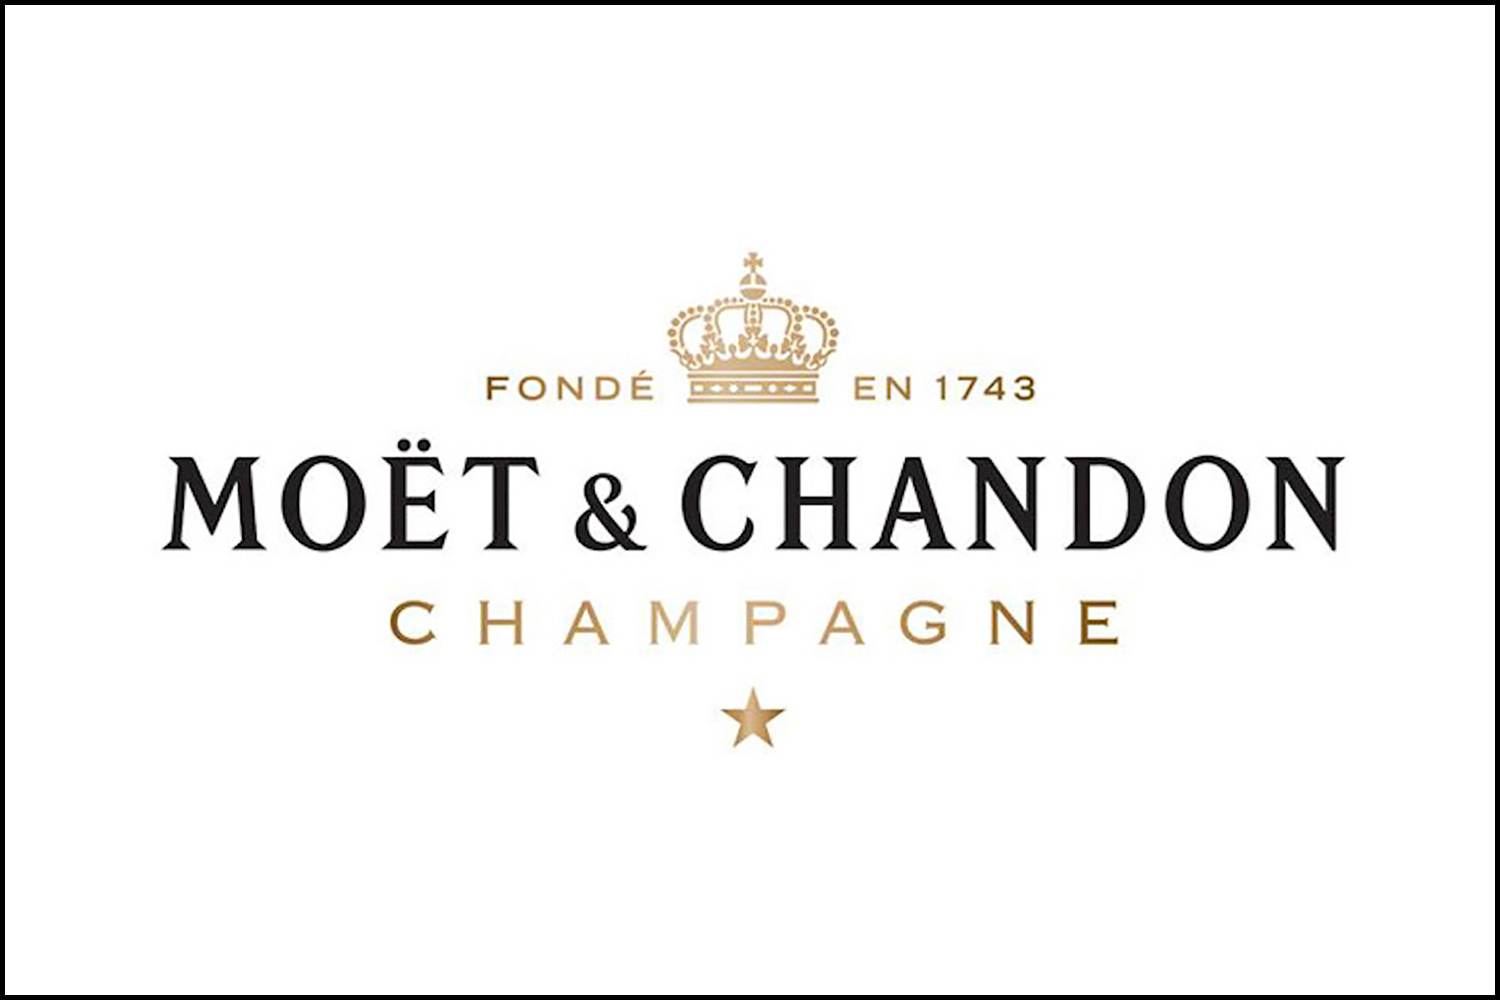 MOET & CHANDON CHAMPAGNE / DIGITAL STRATEGY    Combined a critical assessment of Moet & Chandon Champagne's digital efforts with innovative industry practices, to design a 12-month strategy focusing on social media content evolution, partnership amplification, and regional digital asset creation that supported the overarching marketing strategy for the U.S.